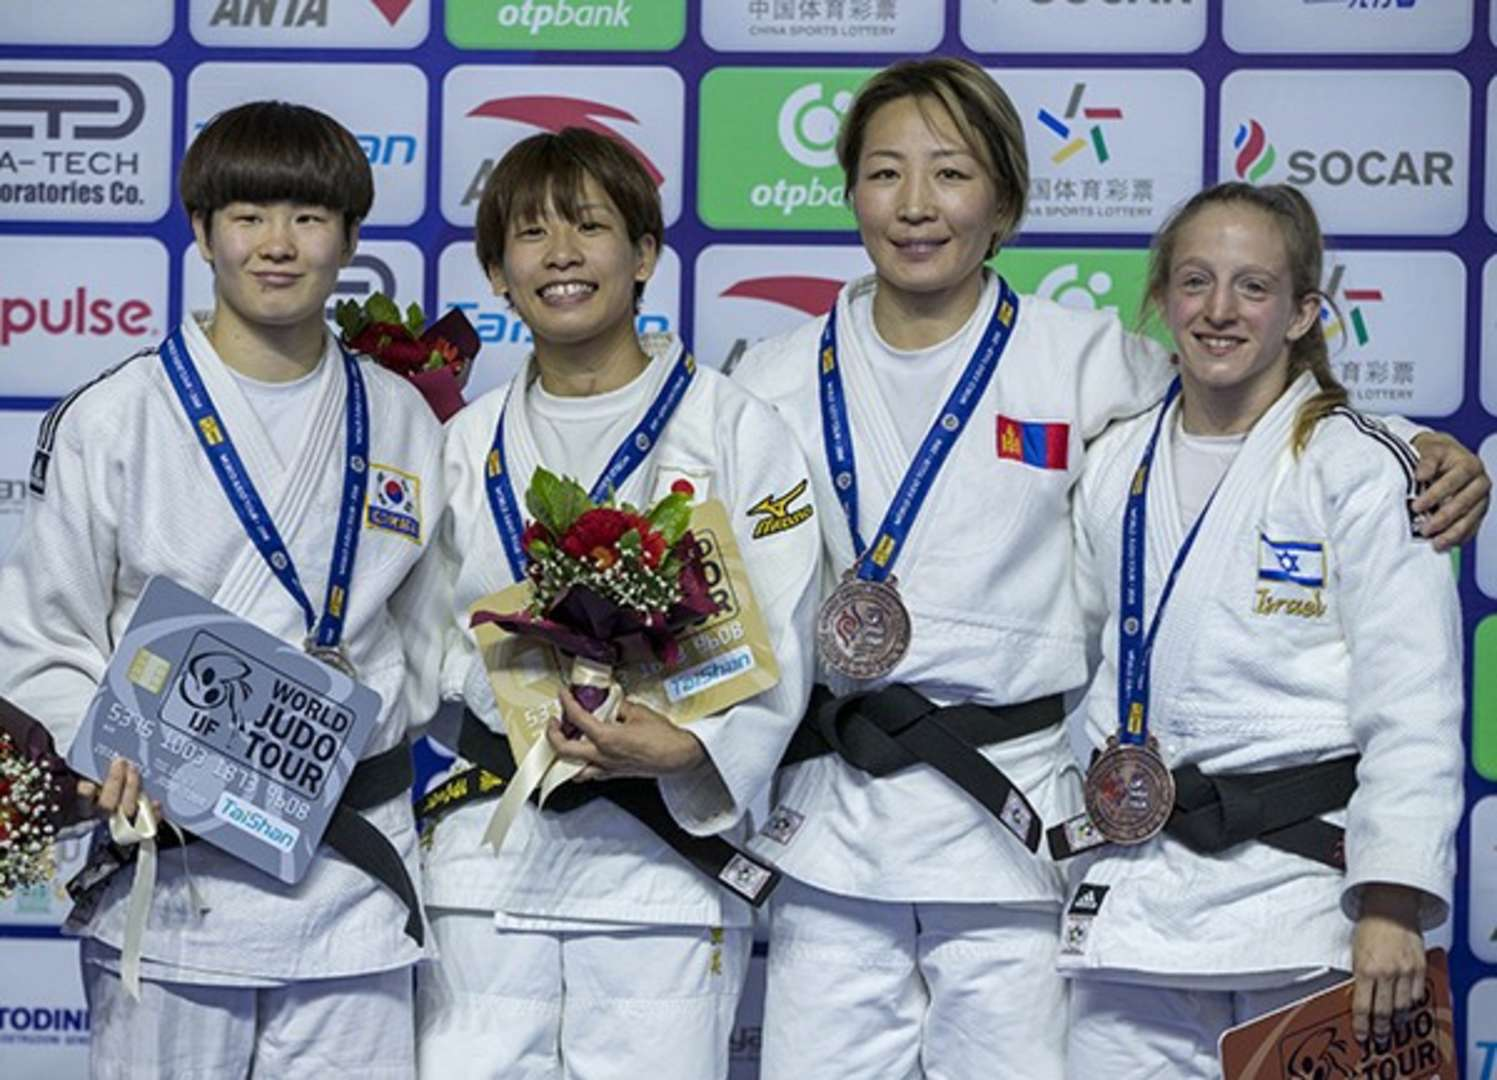 The medal For victory over Japan is a reward to those who won